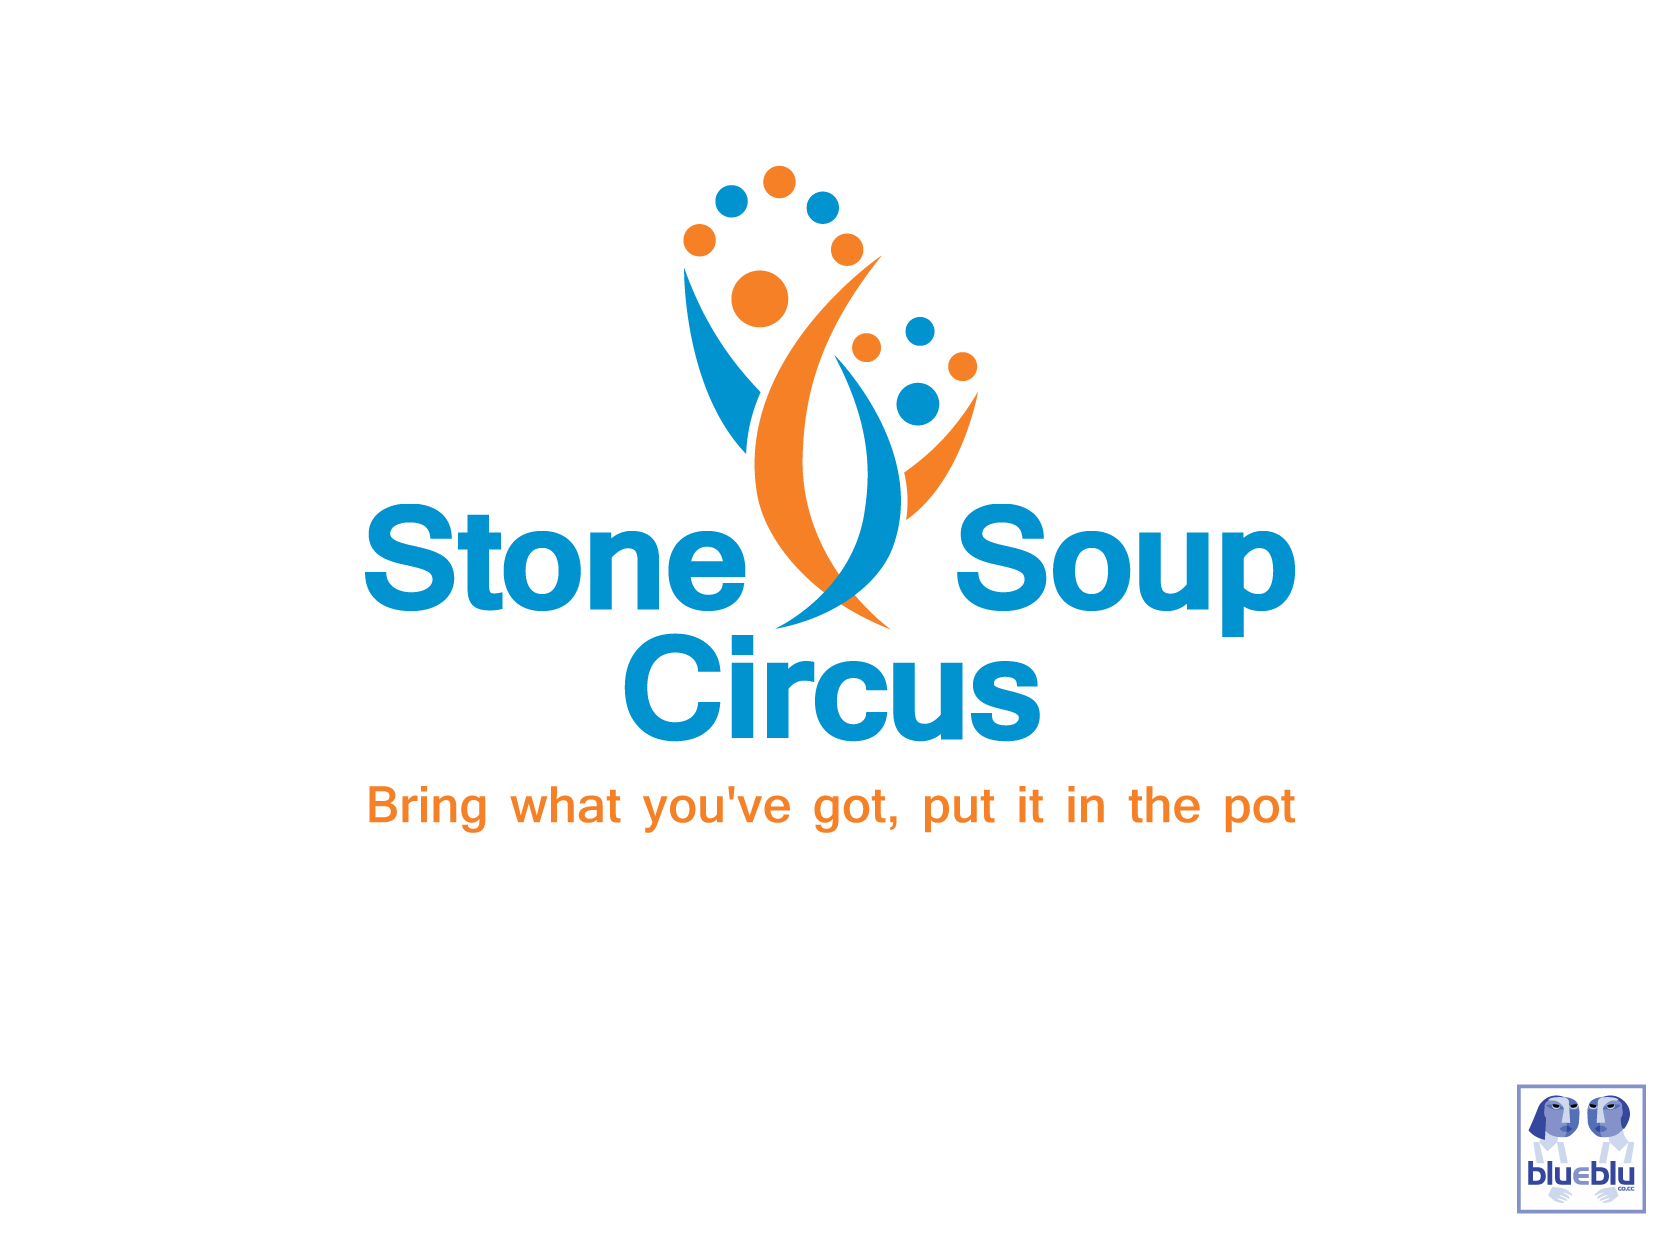 Stone Soup Circus needs a new logo